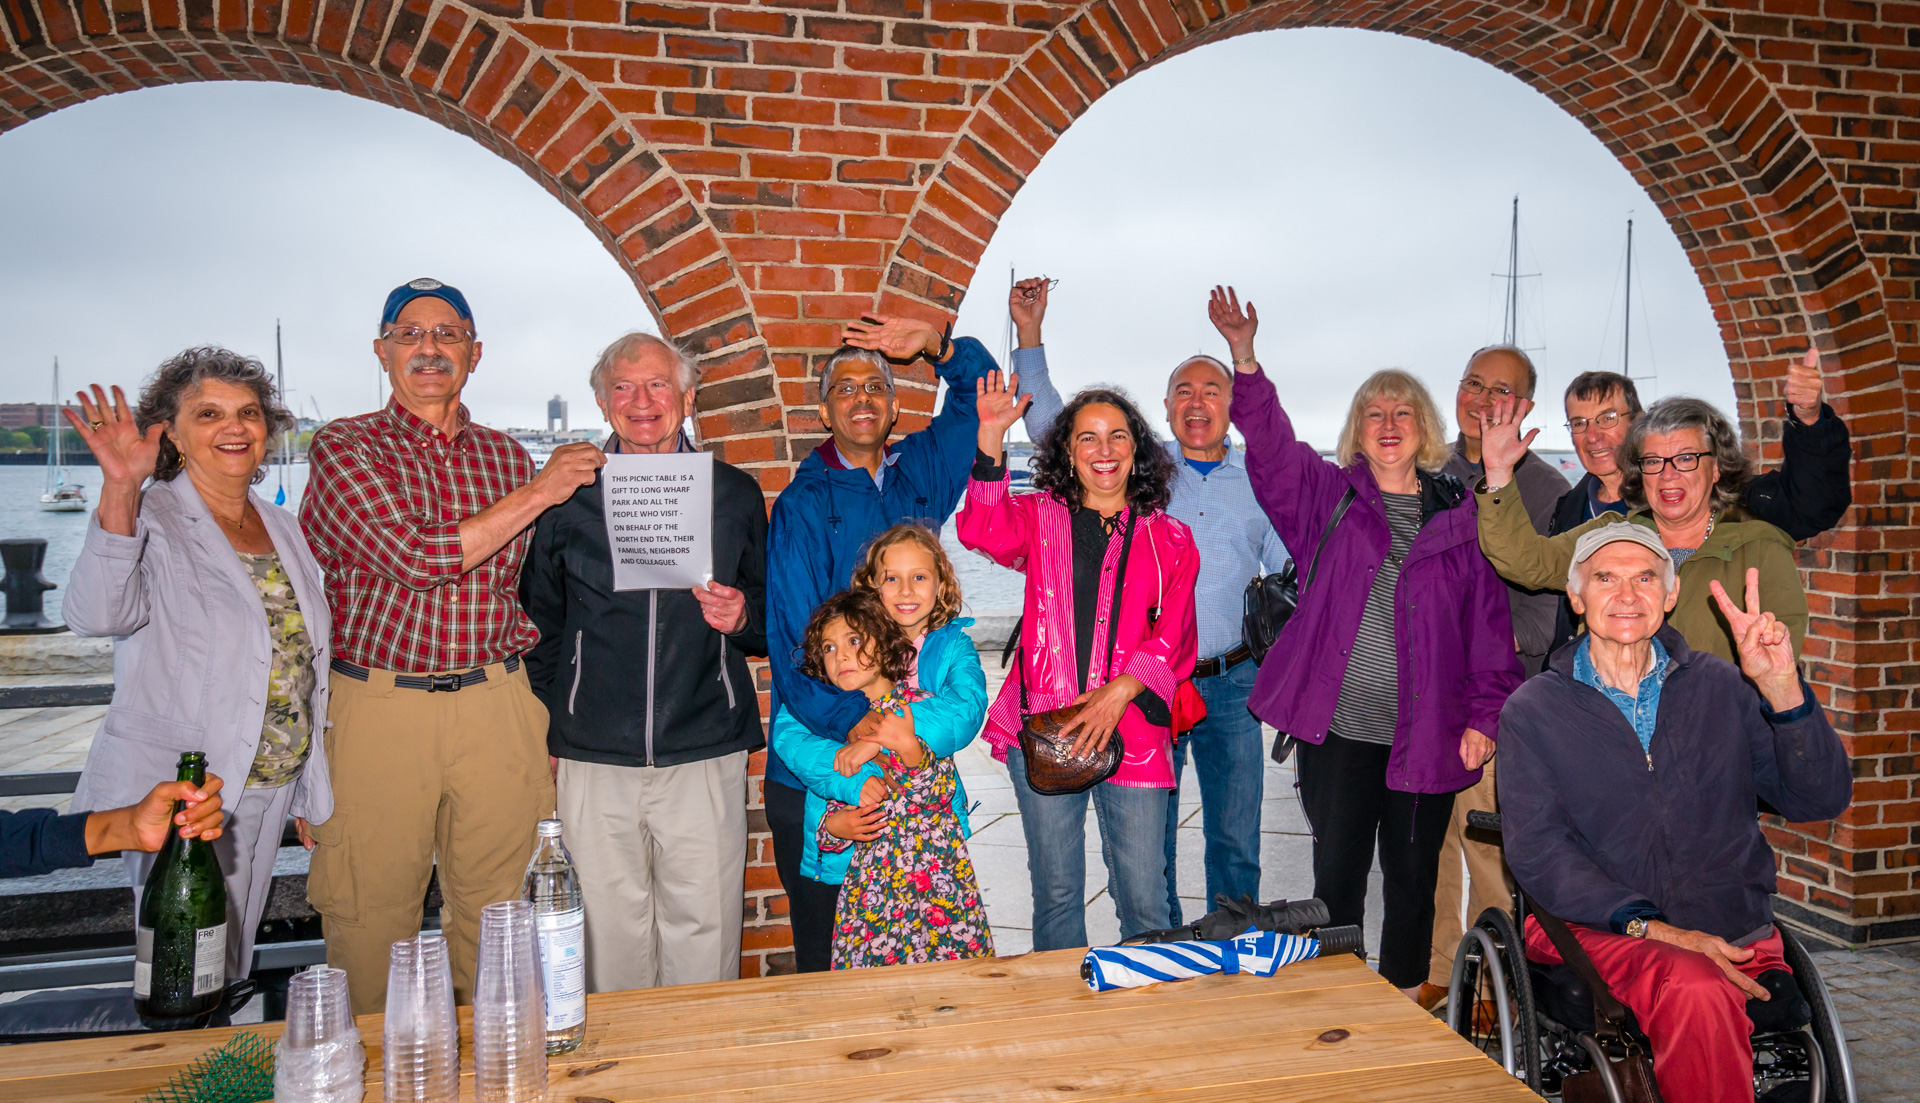 """North End 10"", retired NPS employee Ed Rizzoto and families celebrate Long Wharf as open space (Sept. 2015 after the Federal Court ruling)"